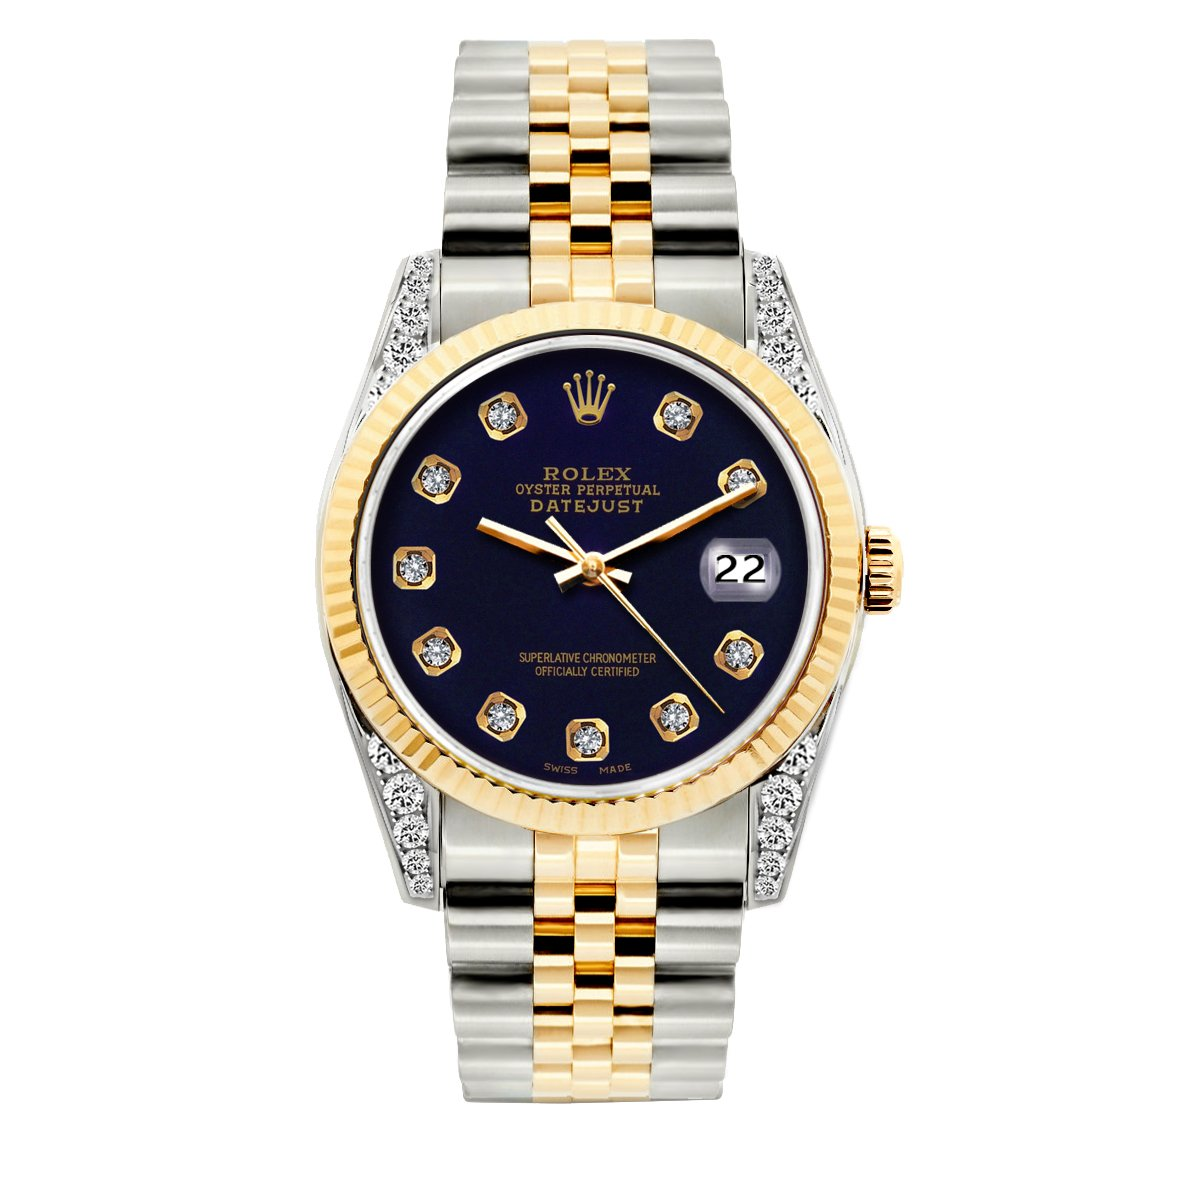 Rolex Datejust Diamond Watch, 36mm, Yellow Gold and Stainless Steel Bracelet Purple Dial w/ Diamond Lugs